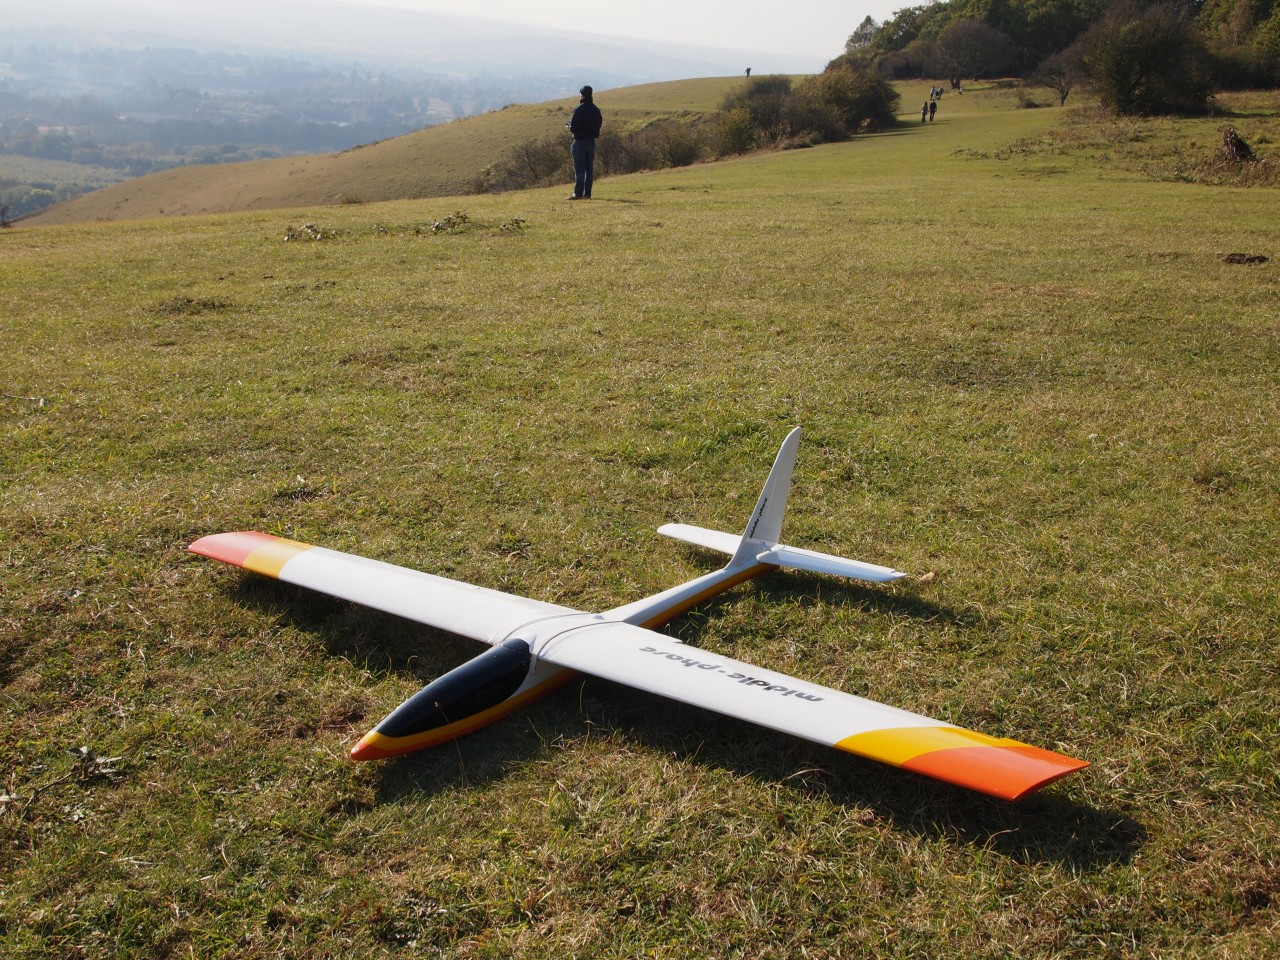 rc heli for sale with Chris Foss Designs Middle Phase Rc Glider on En Mjx Bugs 3 3d Roll Brushless Rc Quadcopter Rtf 2 4ghz For Gopro 3 Gopro 4 P242812 in addition 236 2010 Turbine Helicopter Airframe Md Helicopter 500 For Sale additionally AH 64D Apache Longbow furthermore Showthread in addition Showthread.